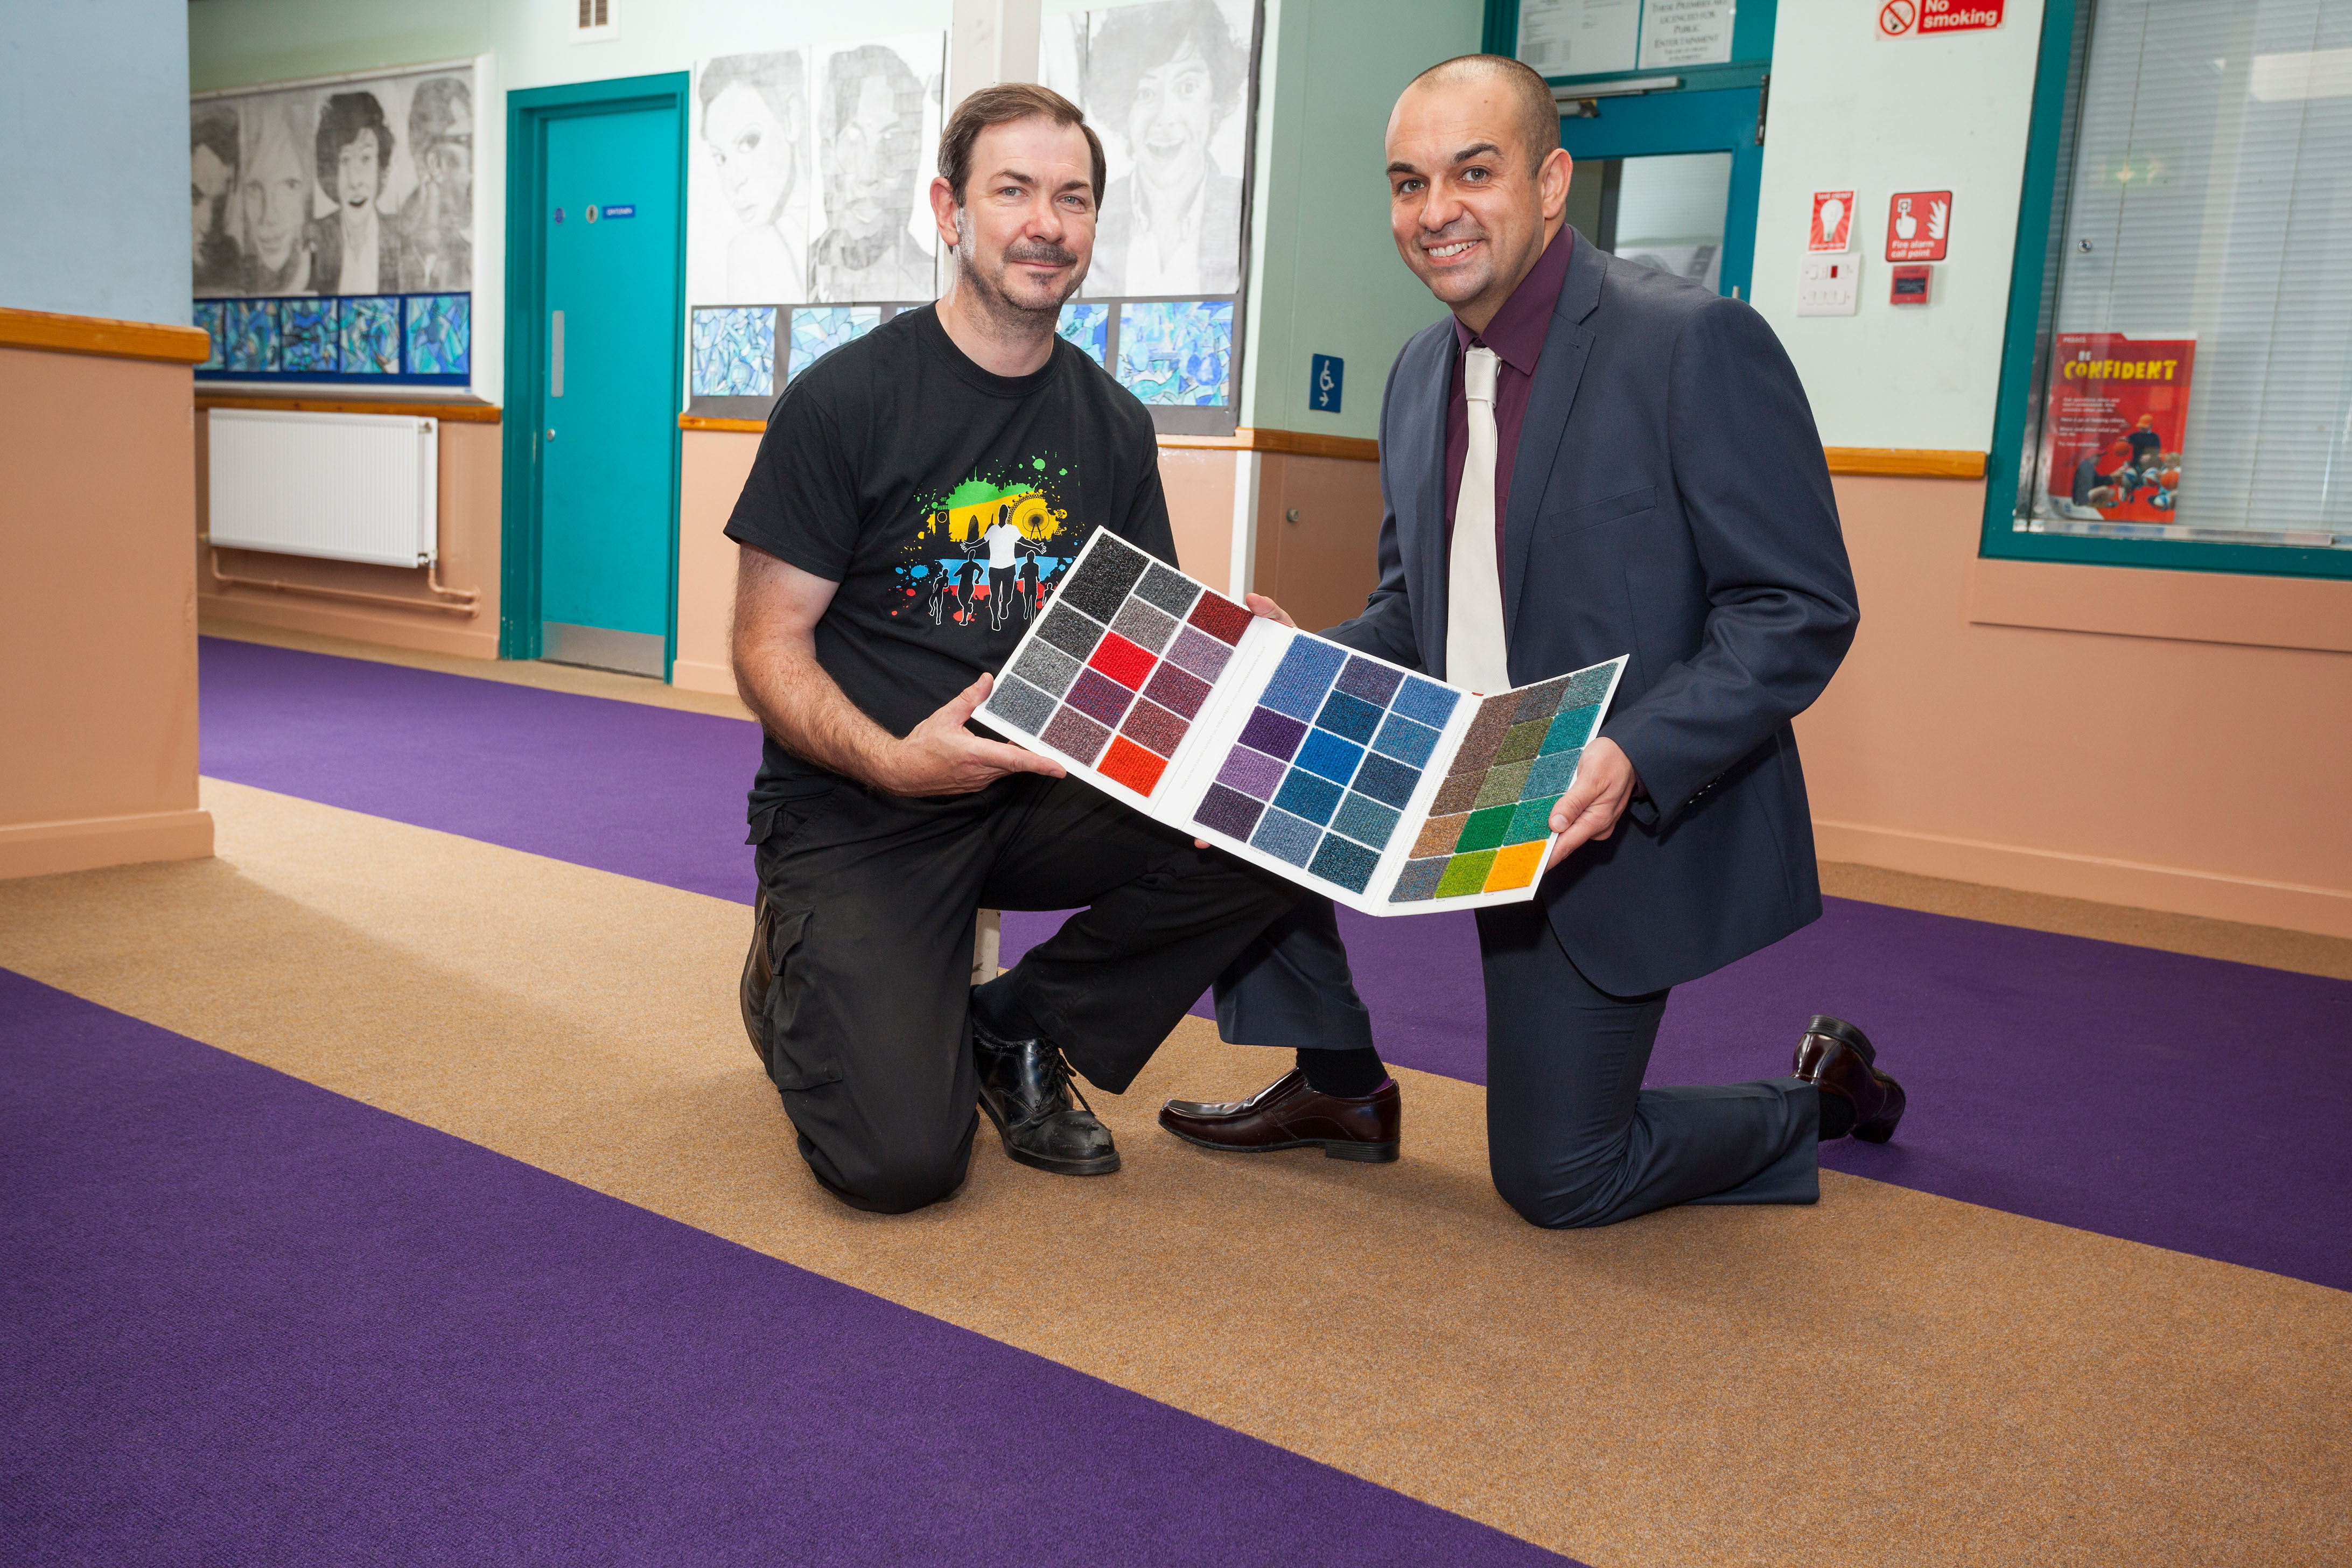 OXFORDSHIRE SCHOOL WINS SUPACORD CARPET COMPETITION